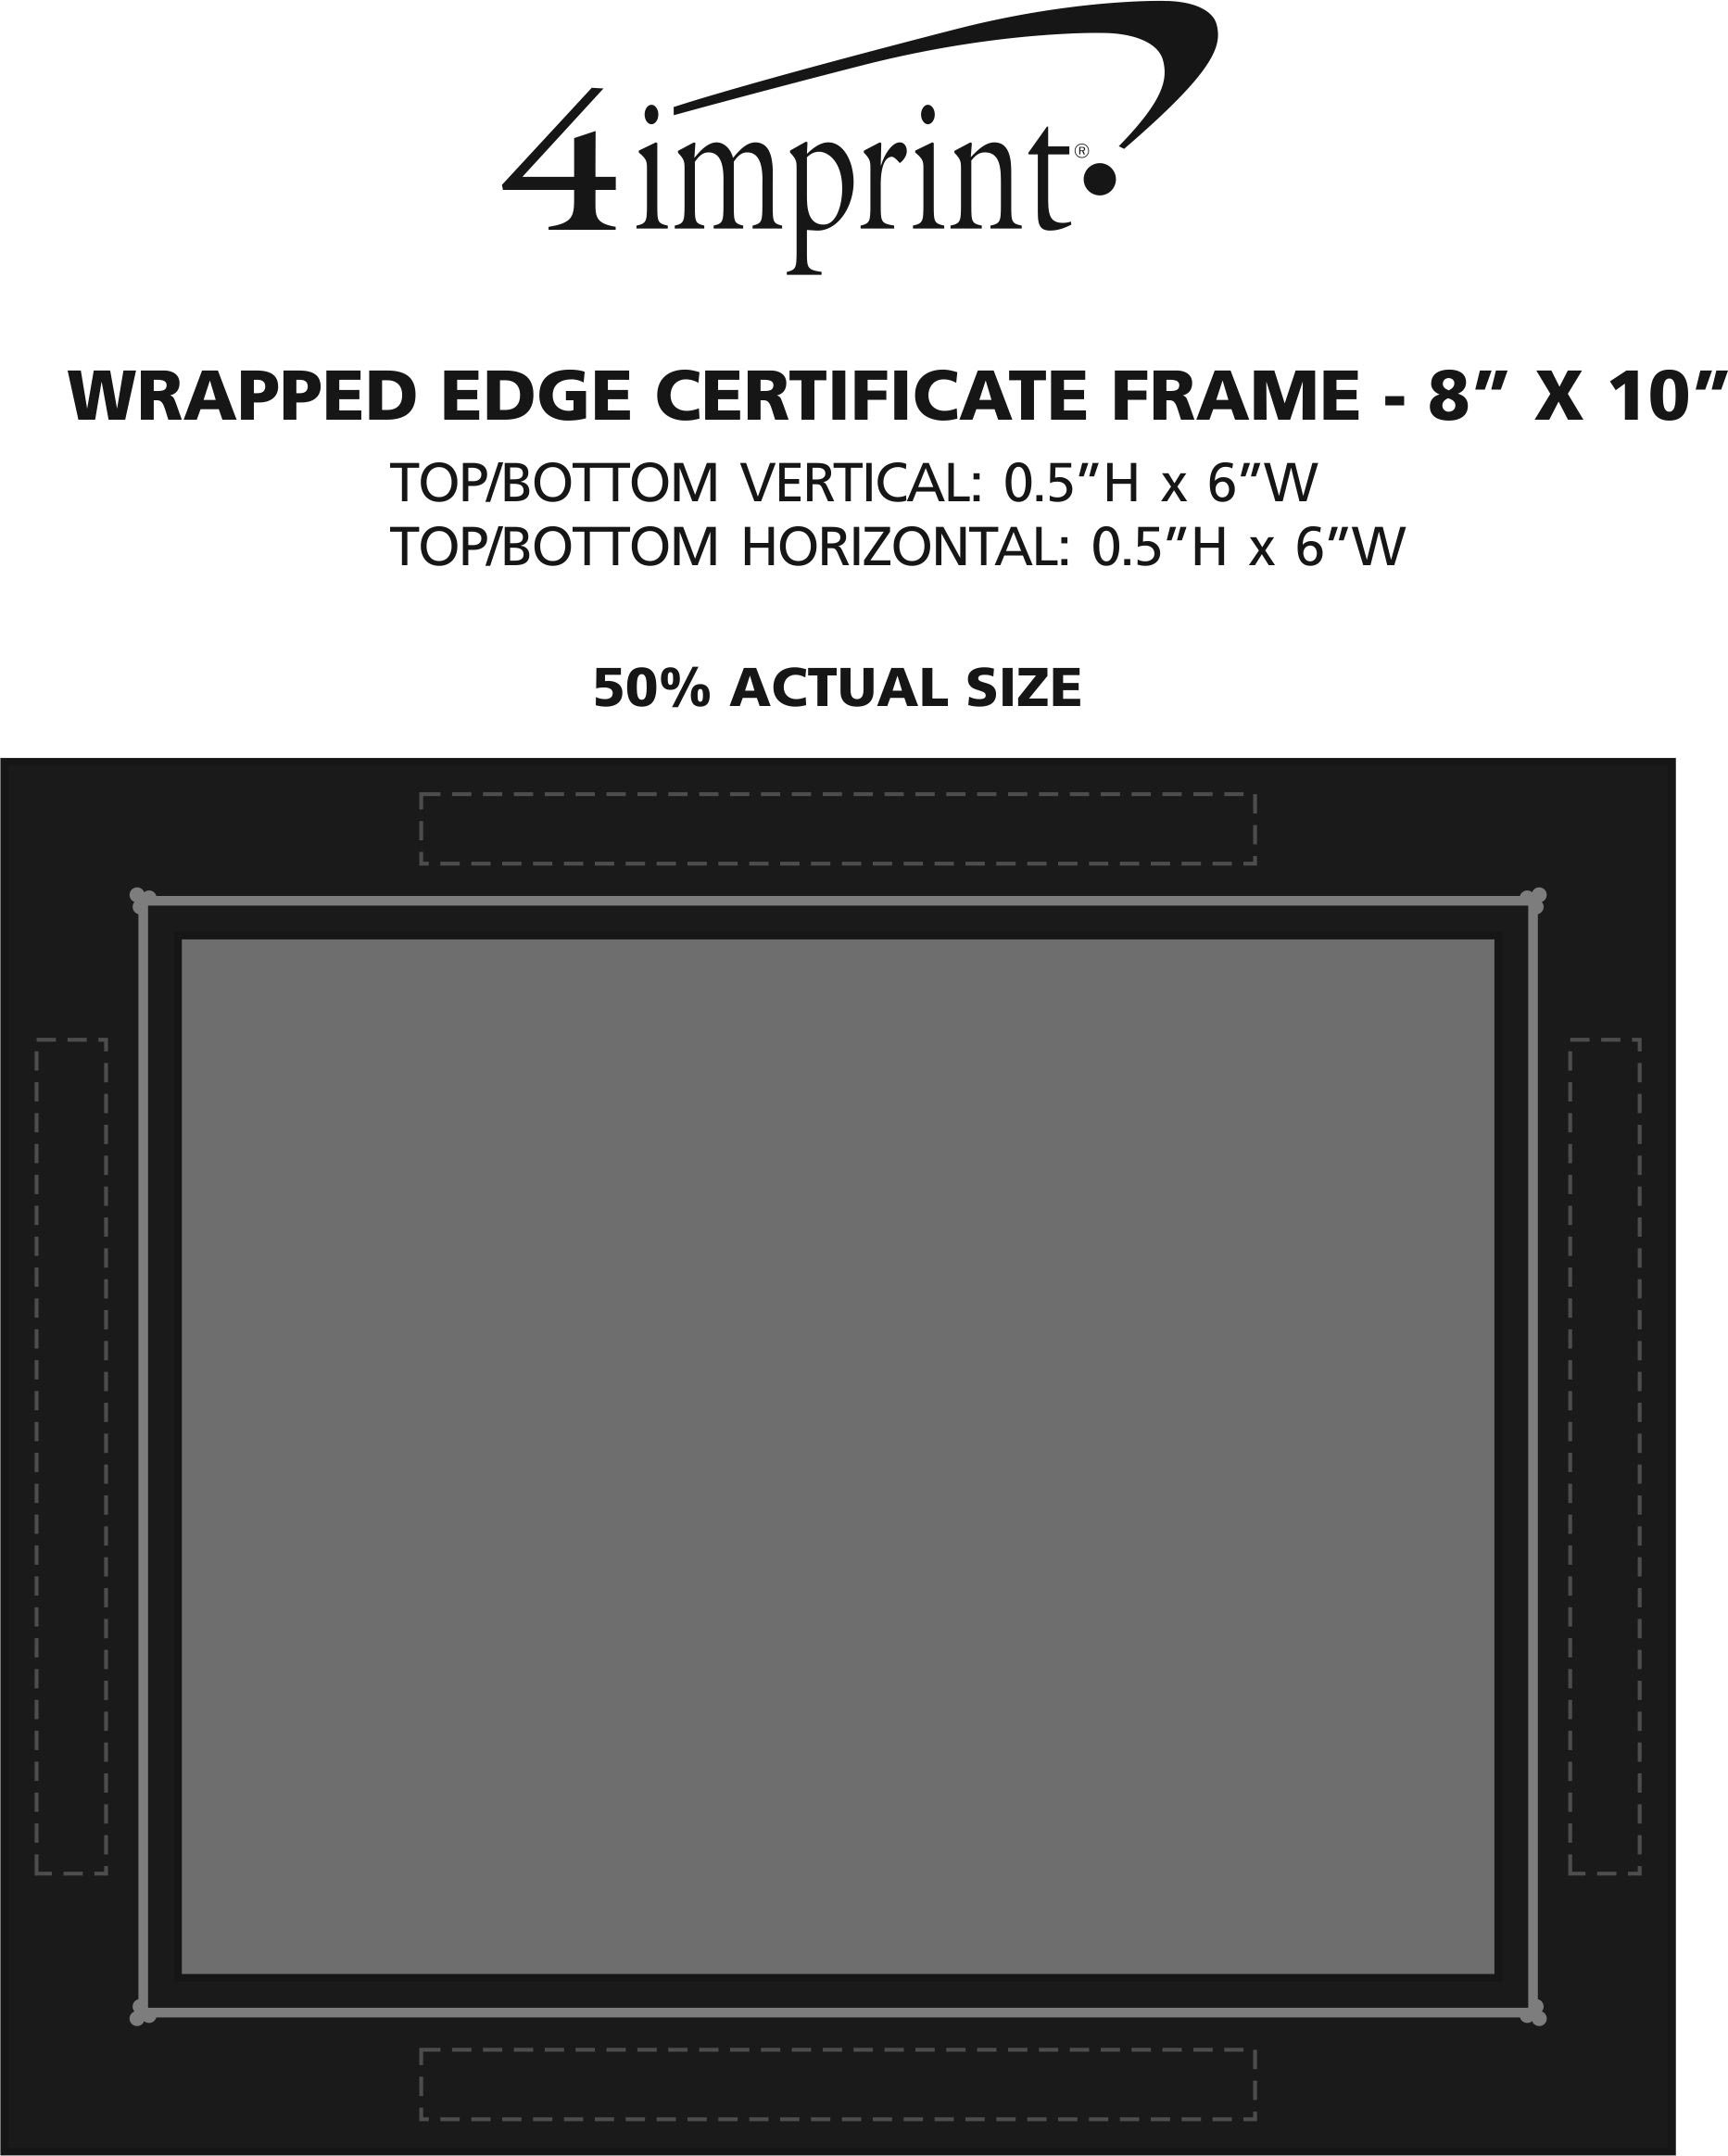 """Imprint Area of Wrapped Edge Certificate Frame - 8"""" x 10"""""""